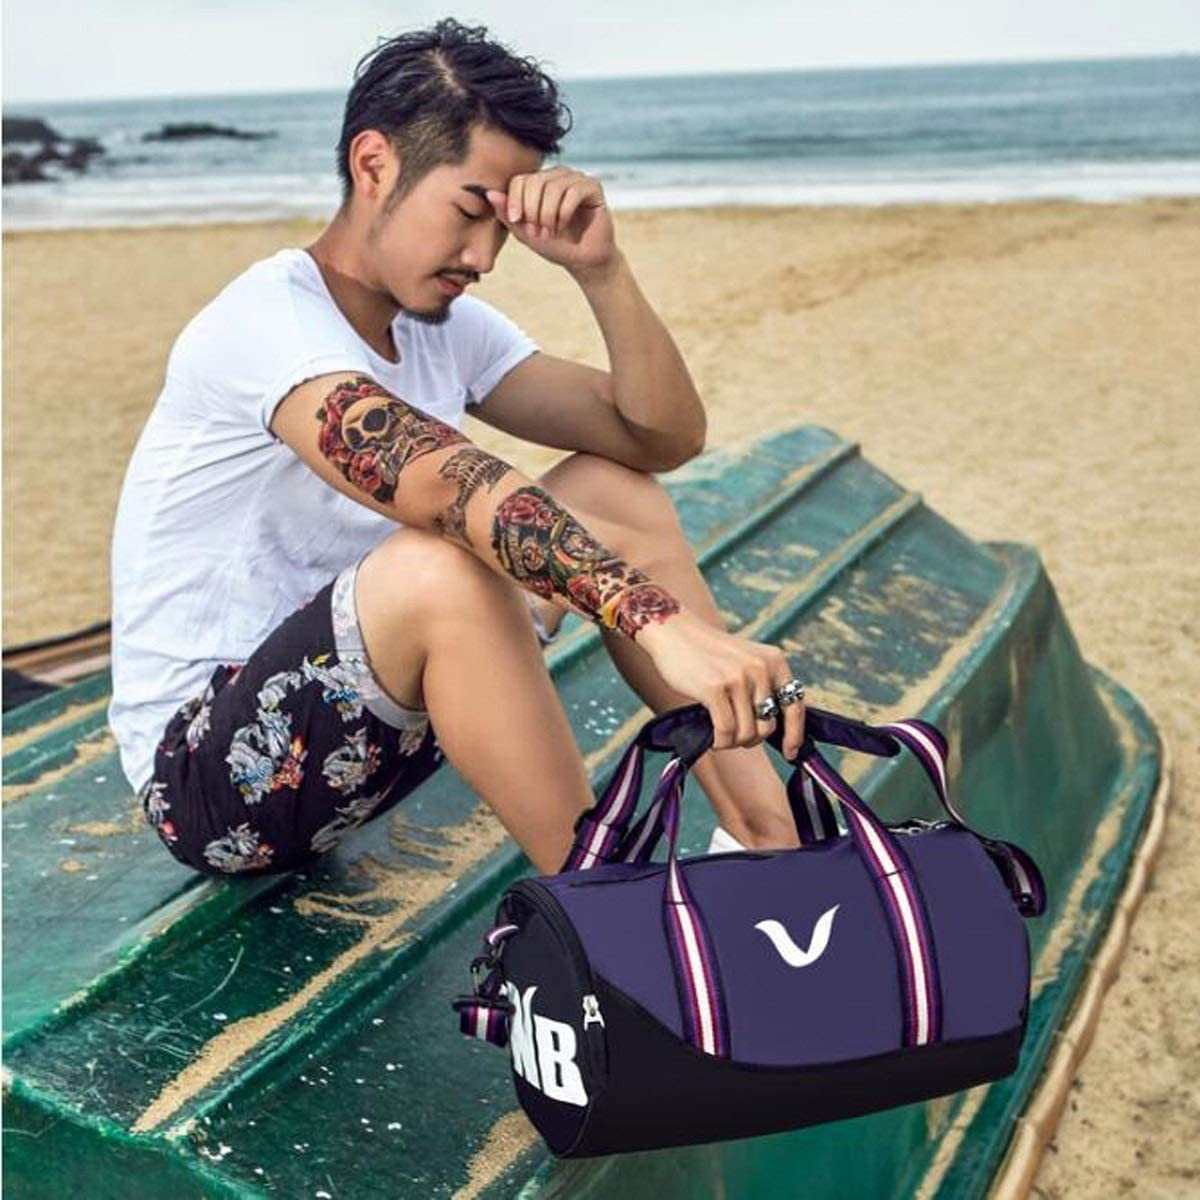 Qiaoxianpo01 Sports Bag Size: 432323cm Wear Resistant Wet and Dry Separation Waterproof Swimming Bag Large Capacity Gym Bag Cylinder Bag Men and Women Portable Messenger Bag